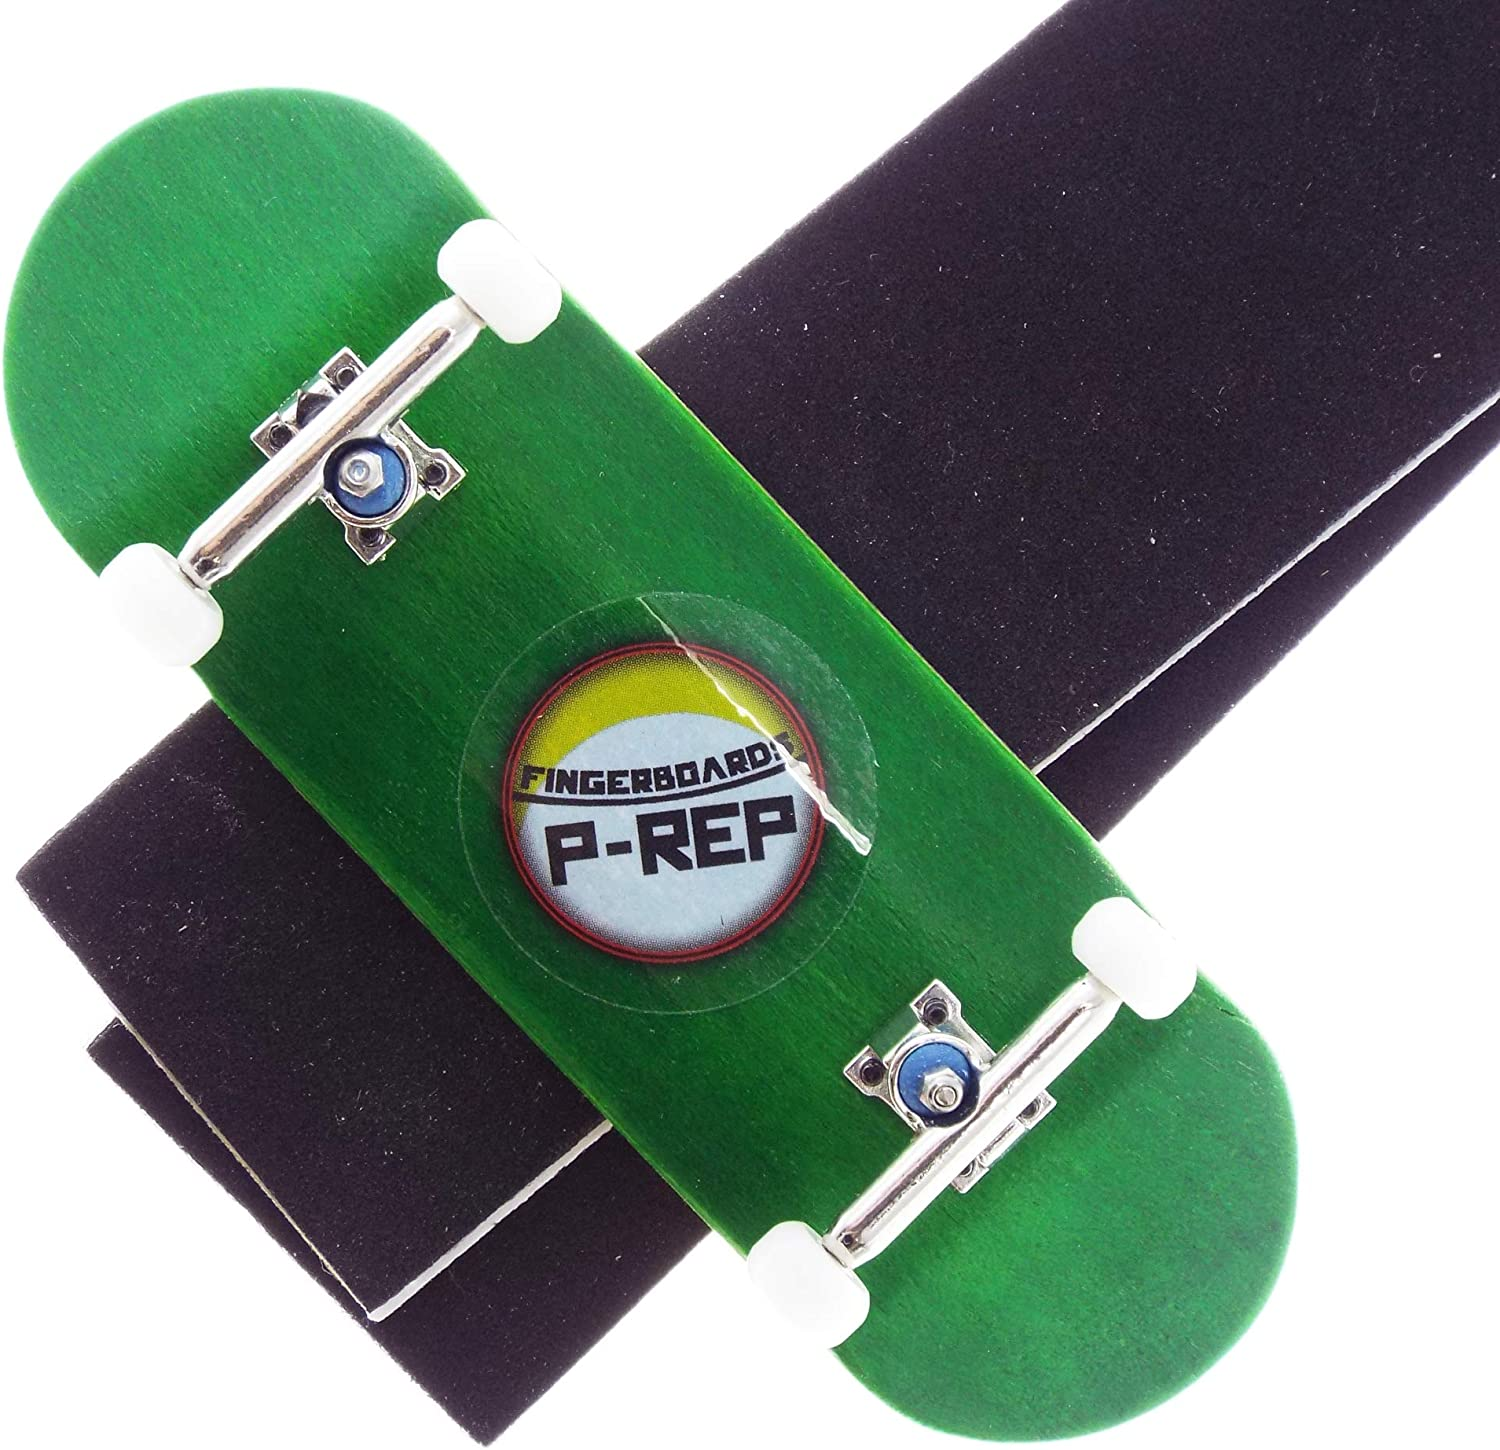 Pink P-REP Solid Performance Complete Wooden Fingerboard 32mm x 100mm Dyed